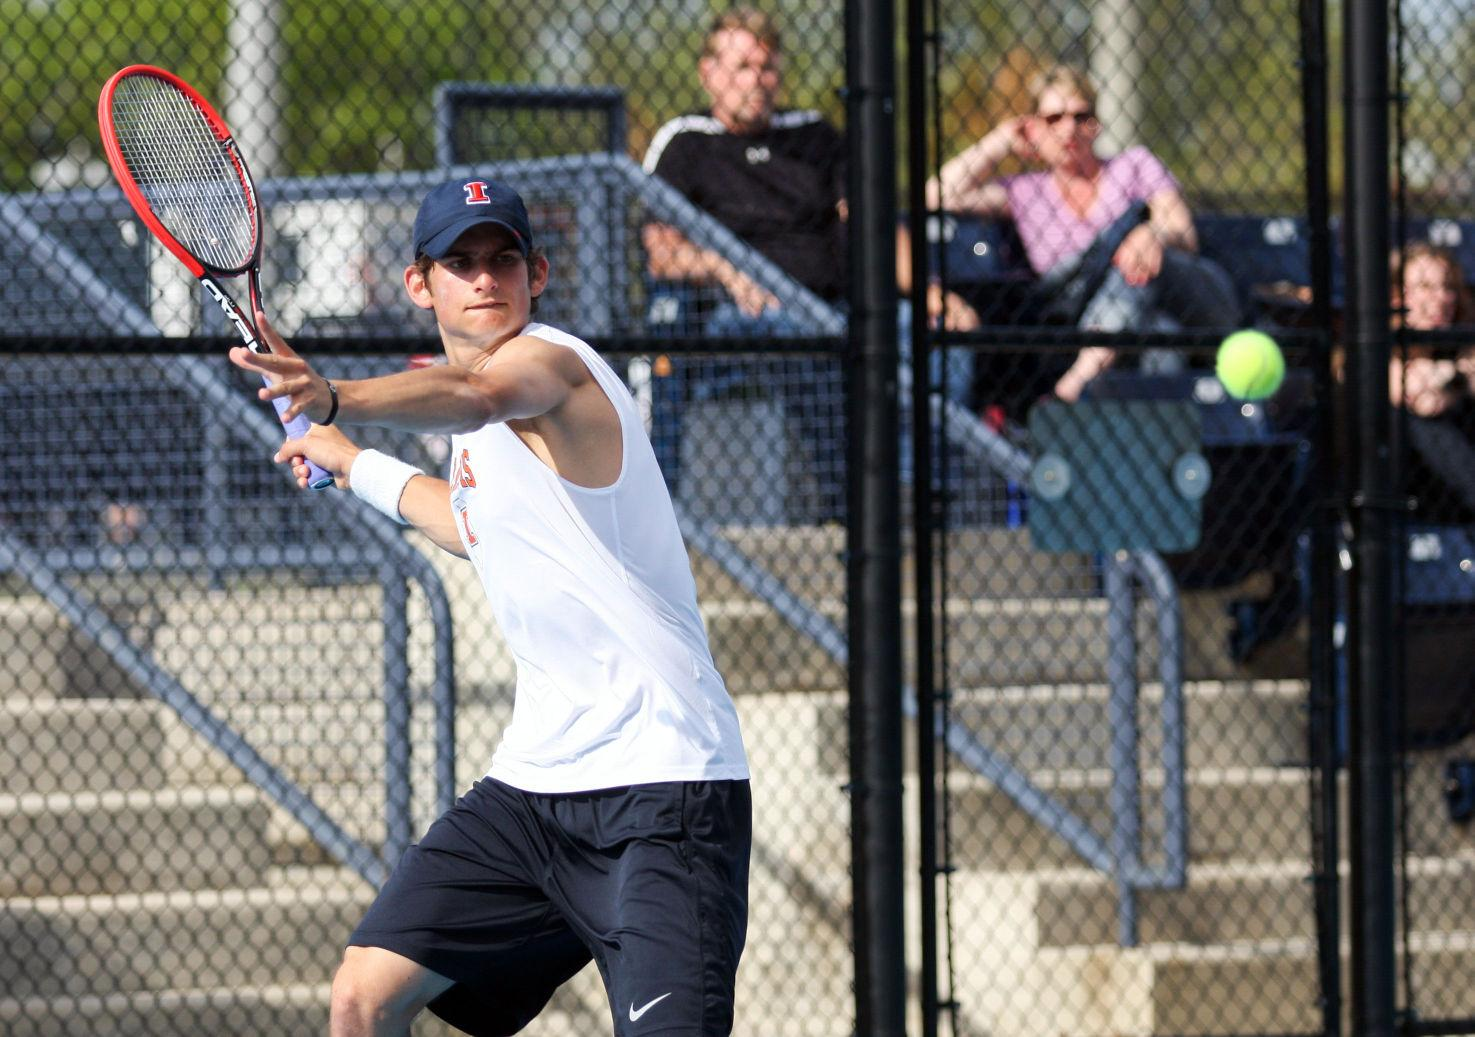 lllinois' Jared Hiltzik prepares to return the ball during the first round of NCAA Tennis Regionals against Ball State University at Khan Outdoor Tennis Complex on May 9, 2014.